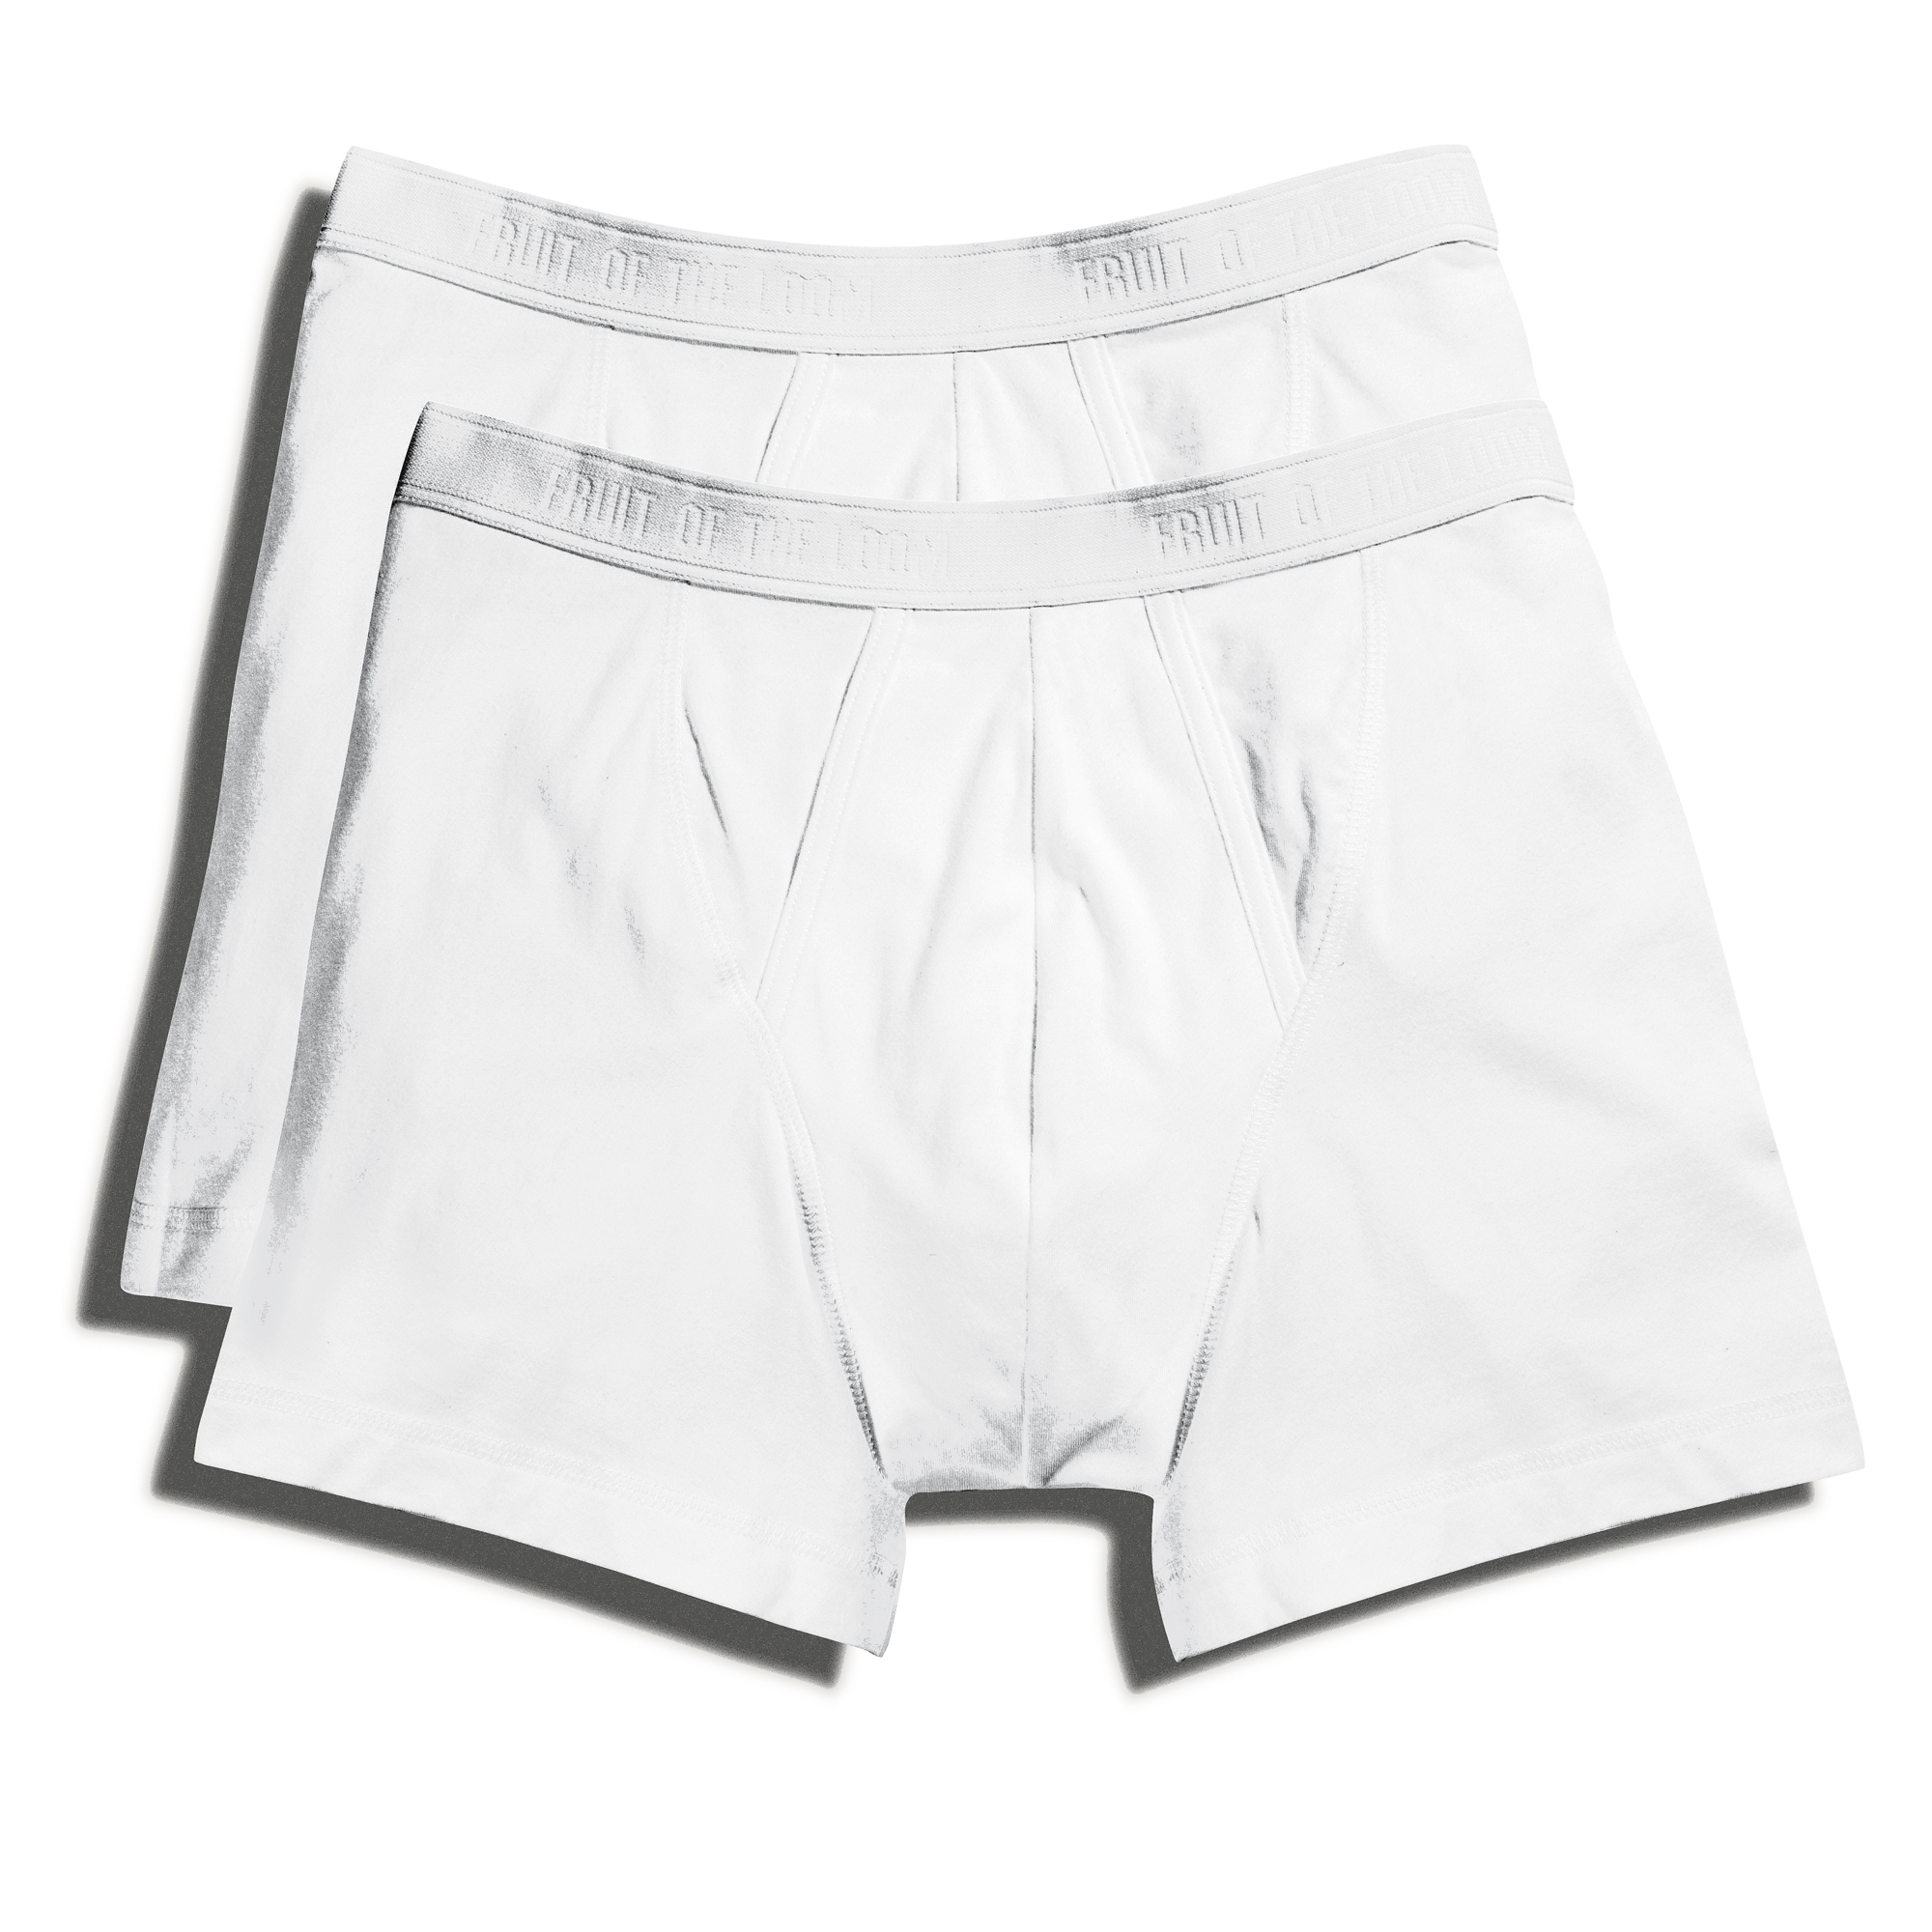 miniature 6 - Fruit Of The Loom - Boxers CLASSIC - Homme (BC3358)